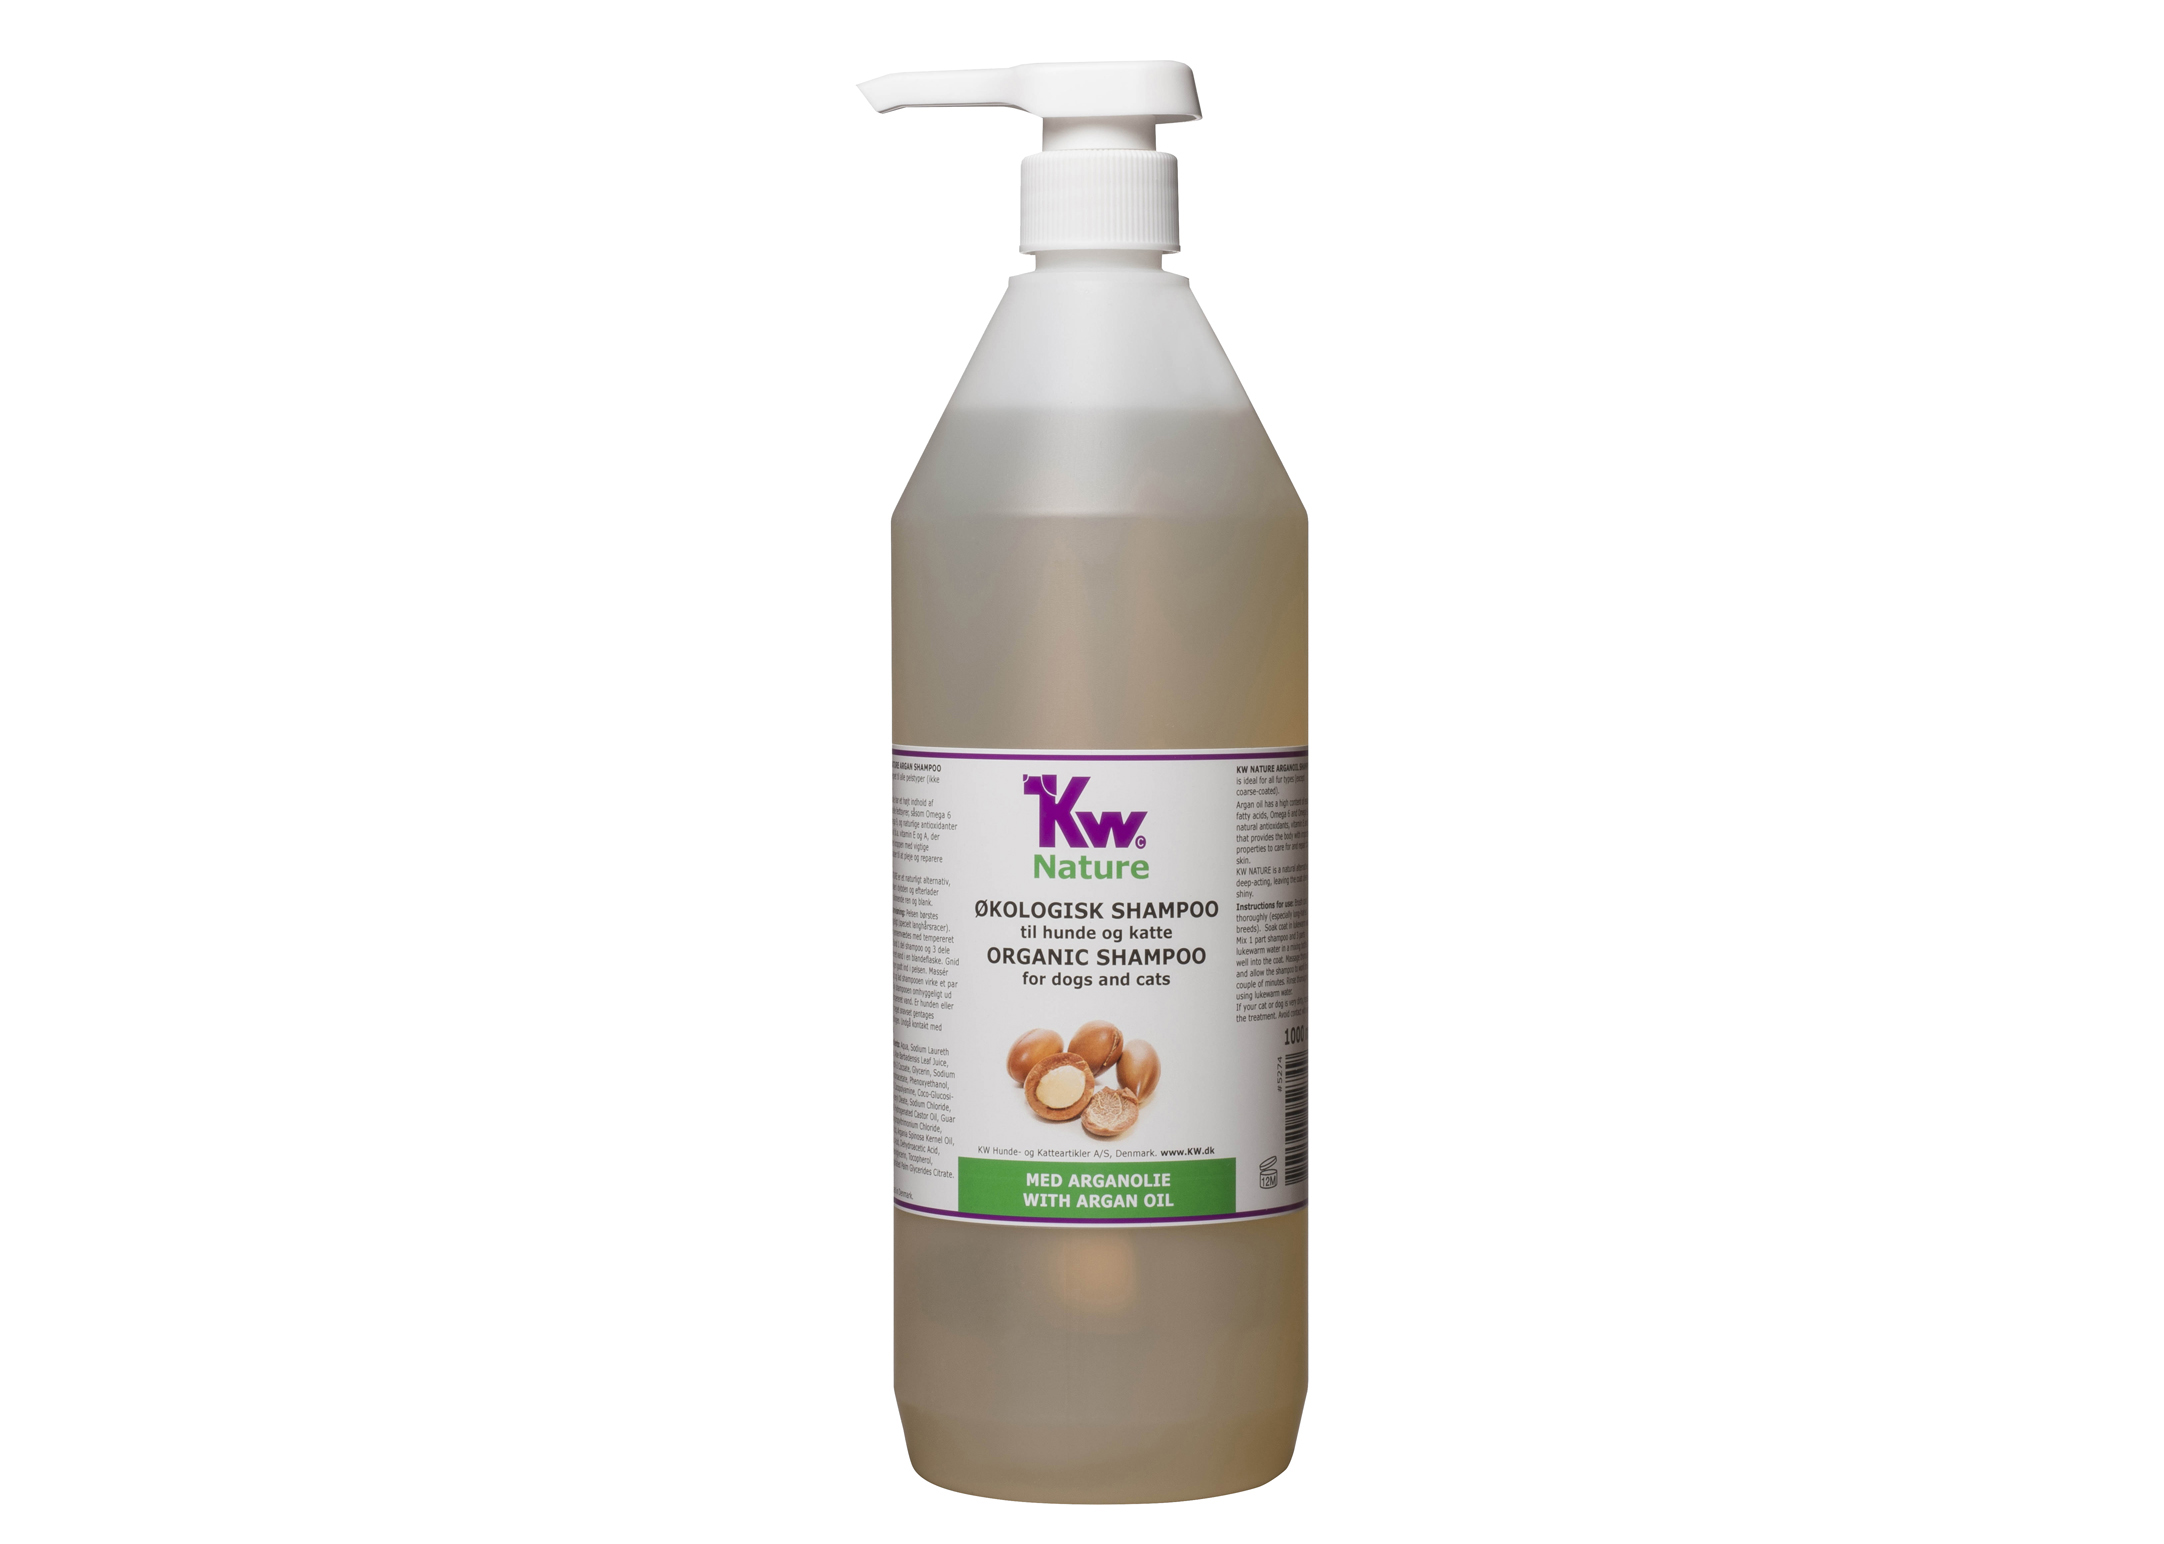 KW Nature Argan Oil Shampooing 1L